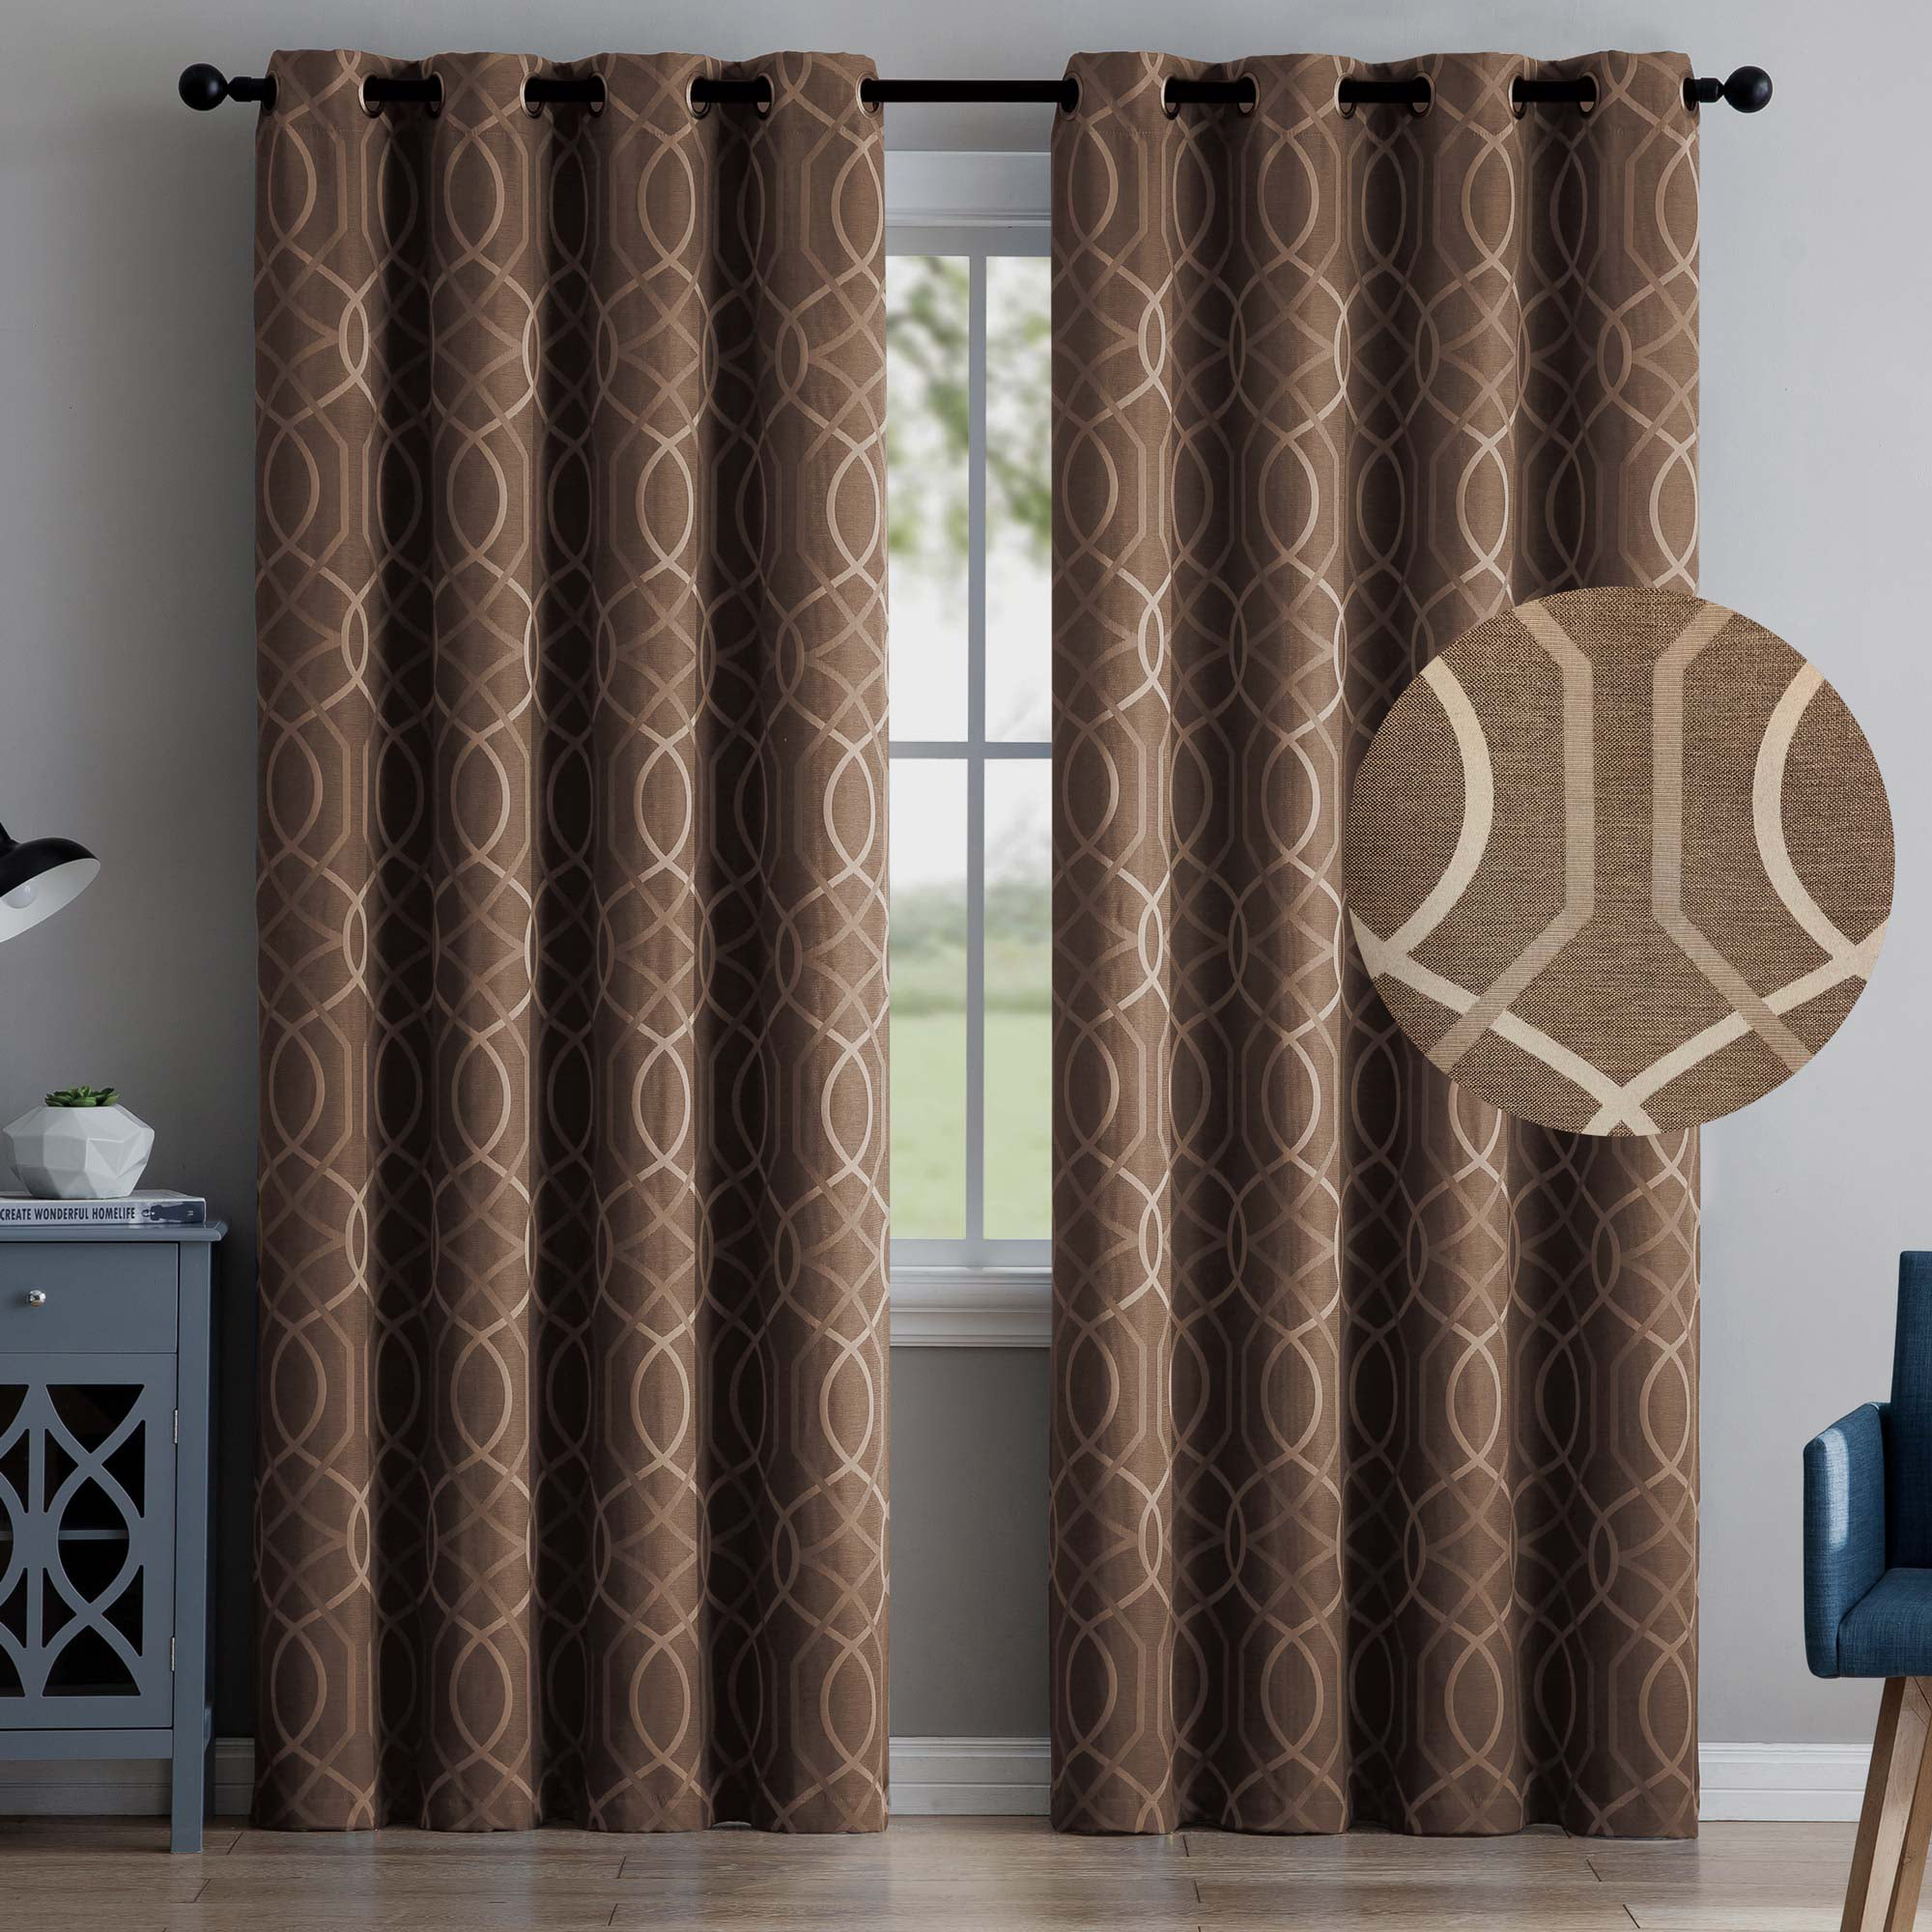 "2 Blackout Room Darkening Window Curtains 84"" Length Brown Embossed Trellis Grommet Panel Pair Drapes by"